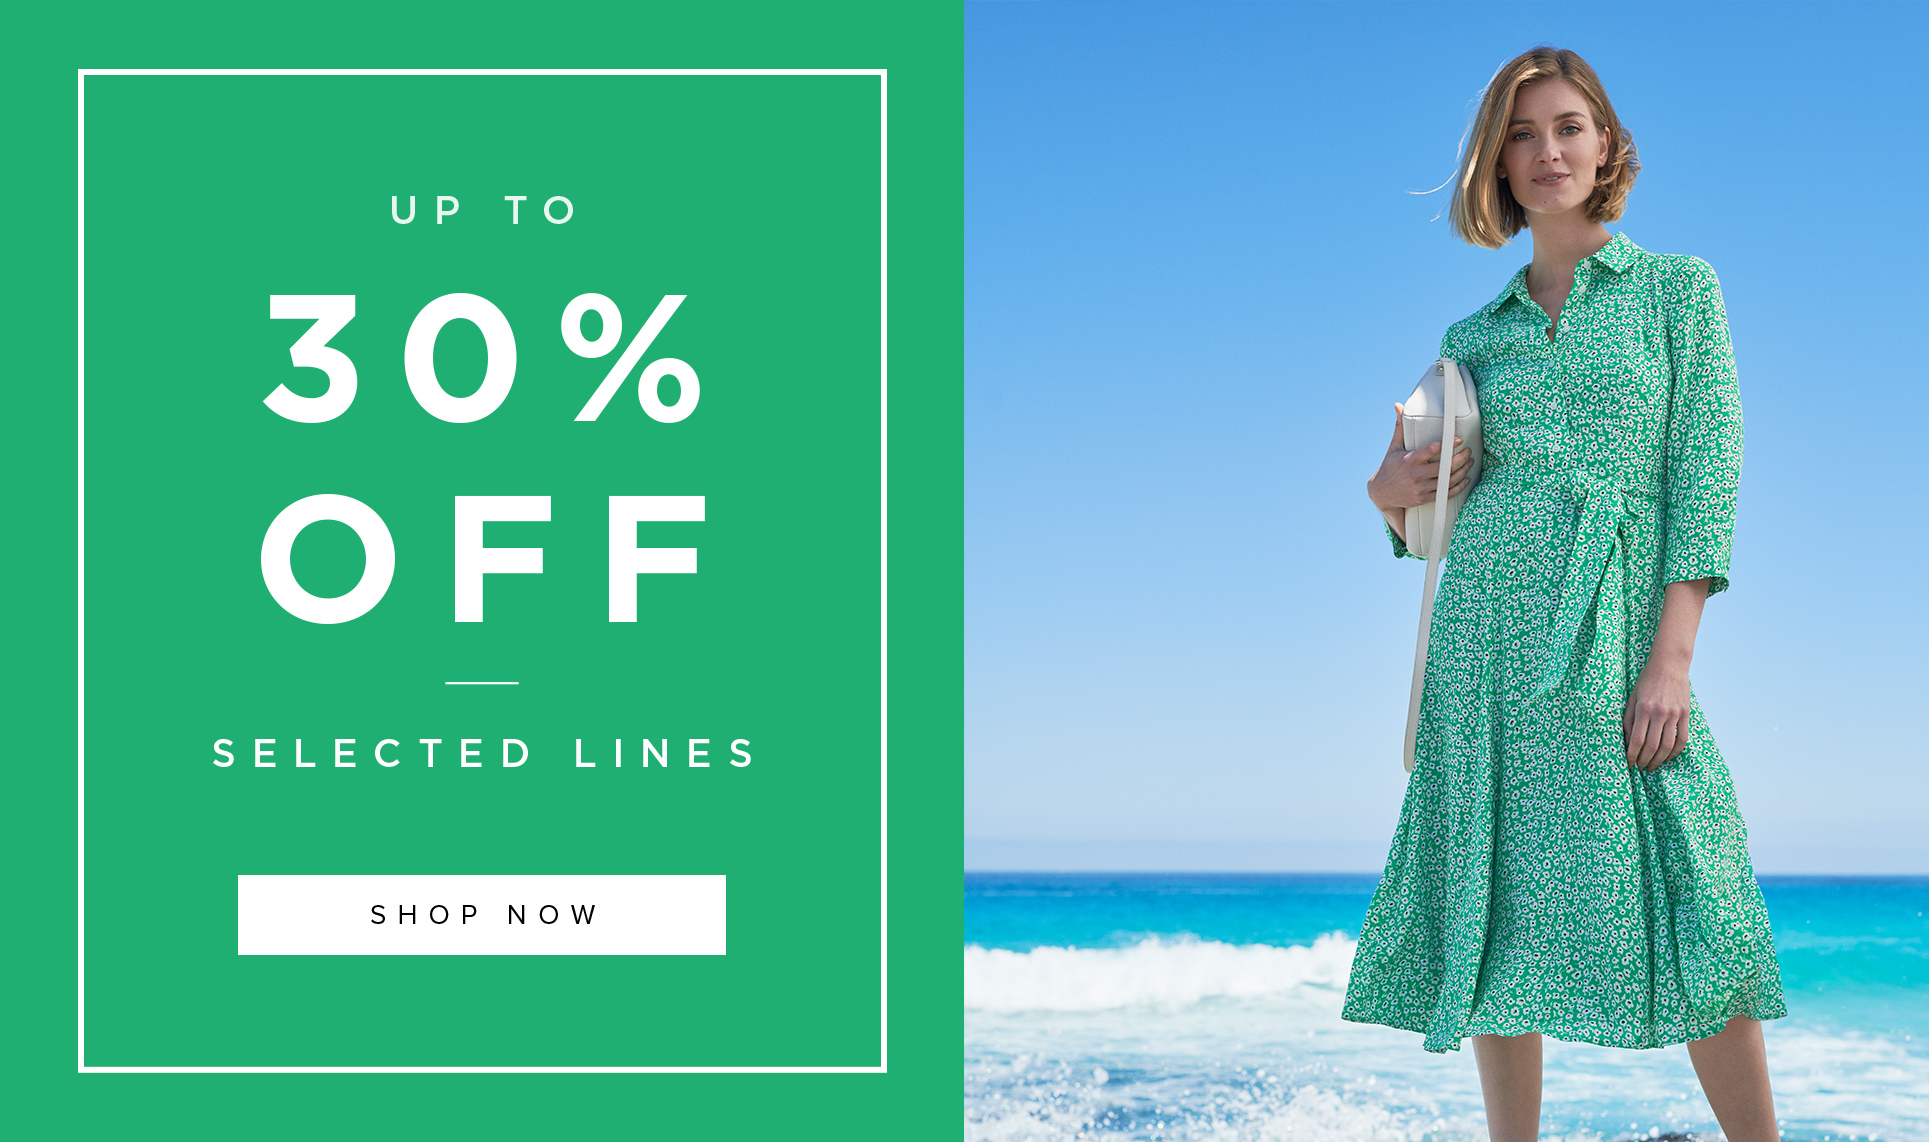 Green Work Dress and Navy and Pink Suit Up to 30% Off Promotion